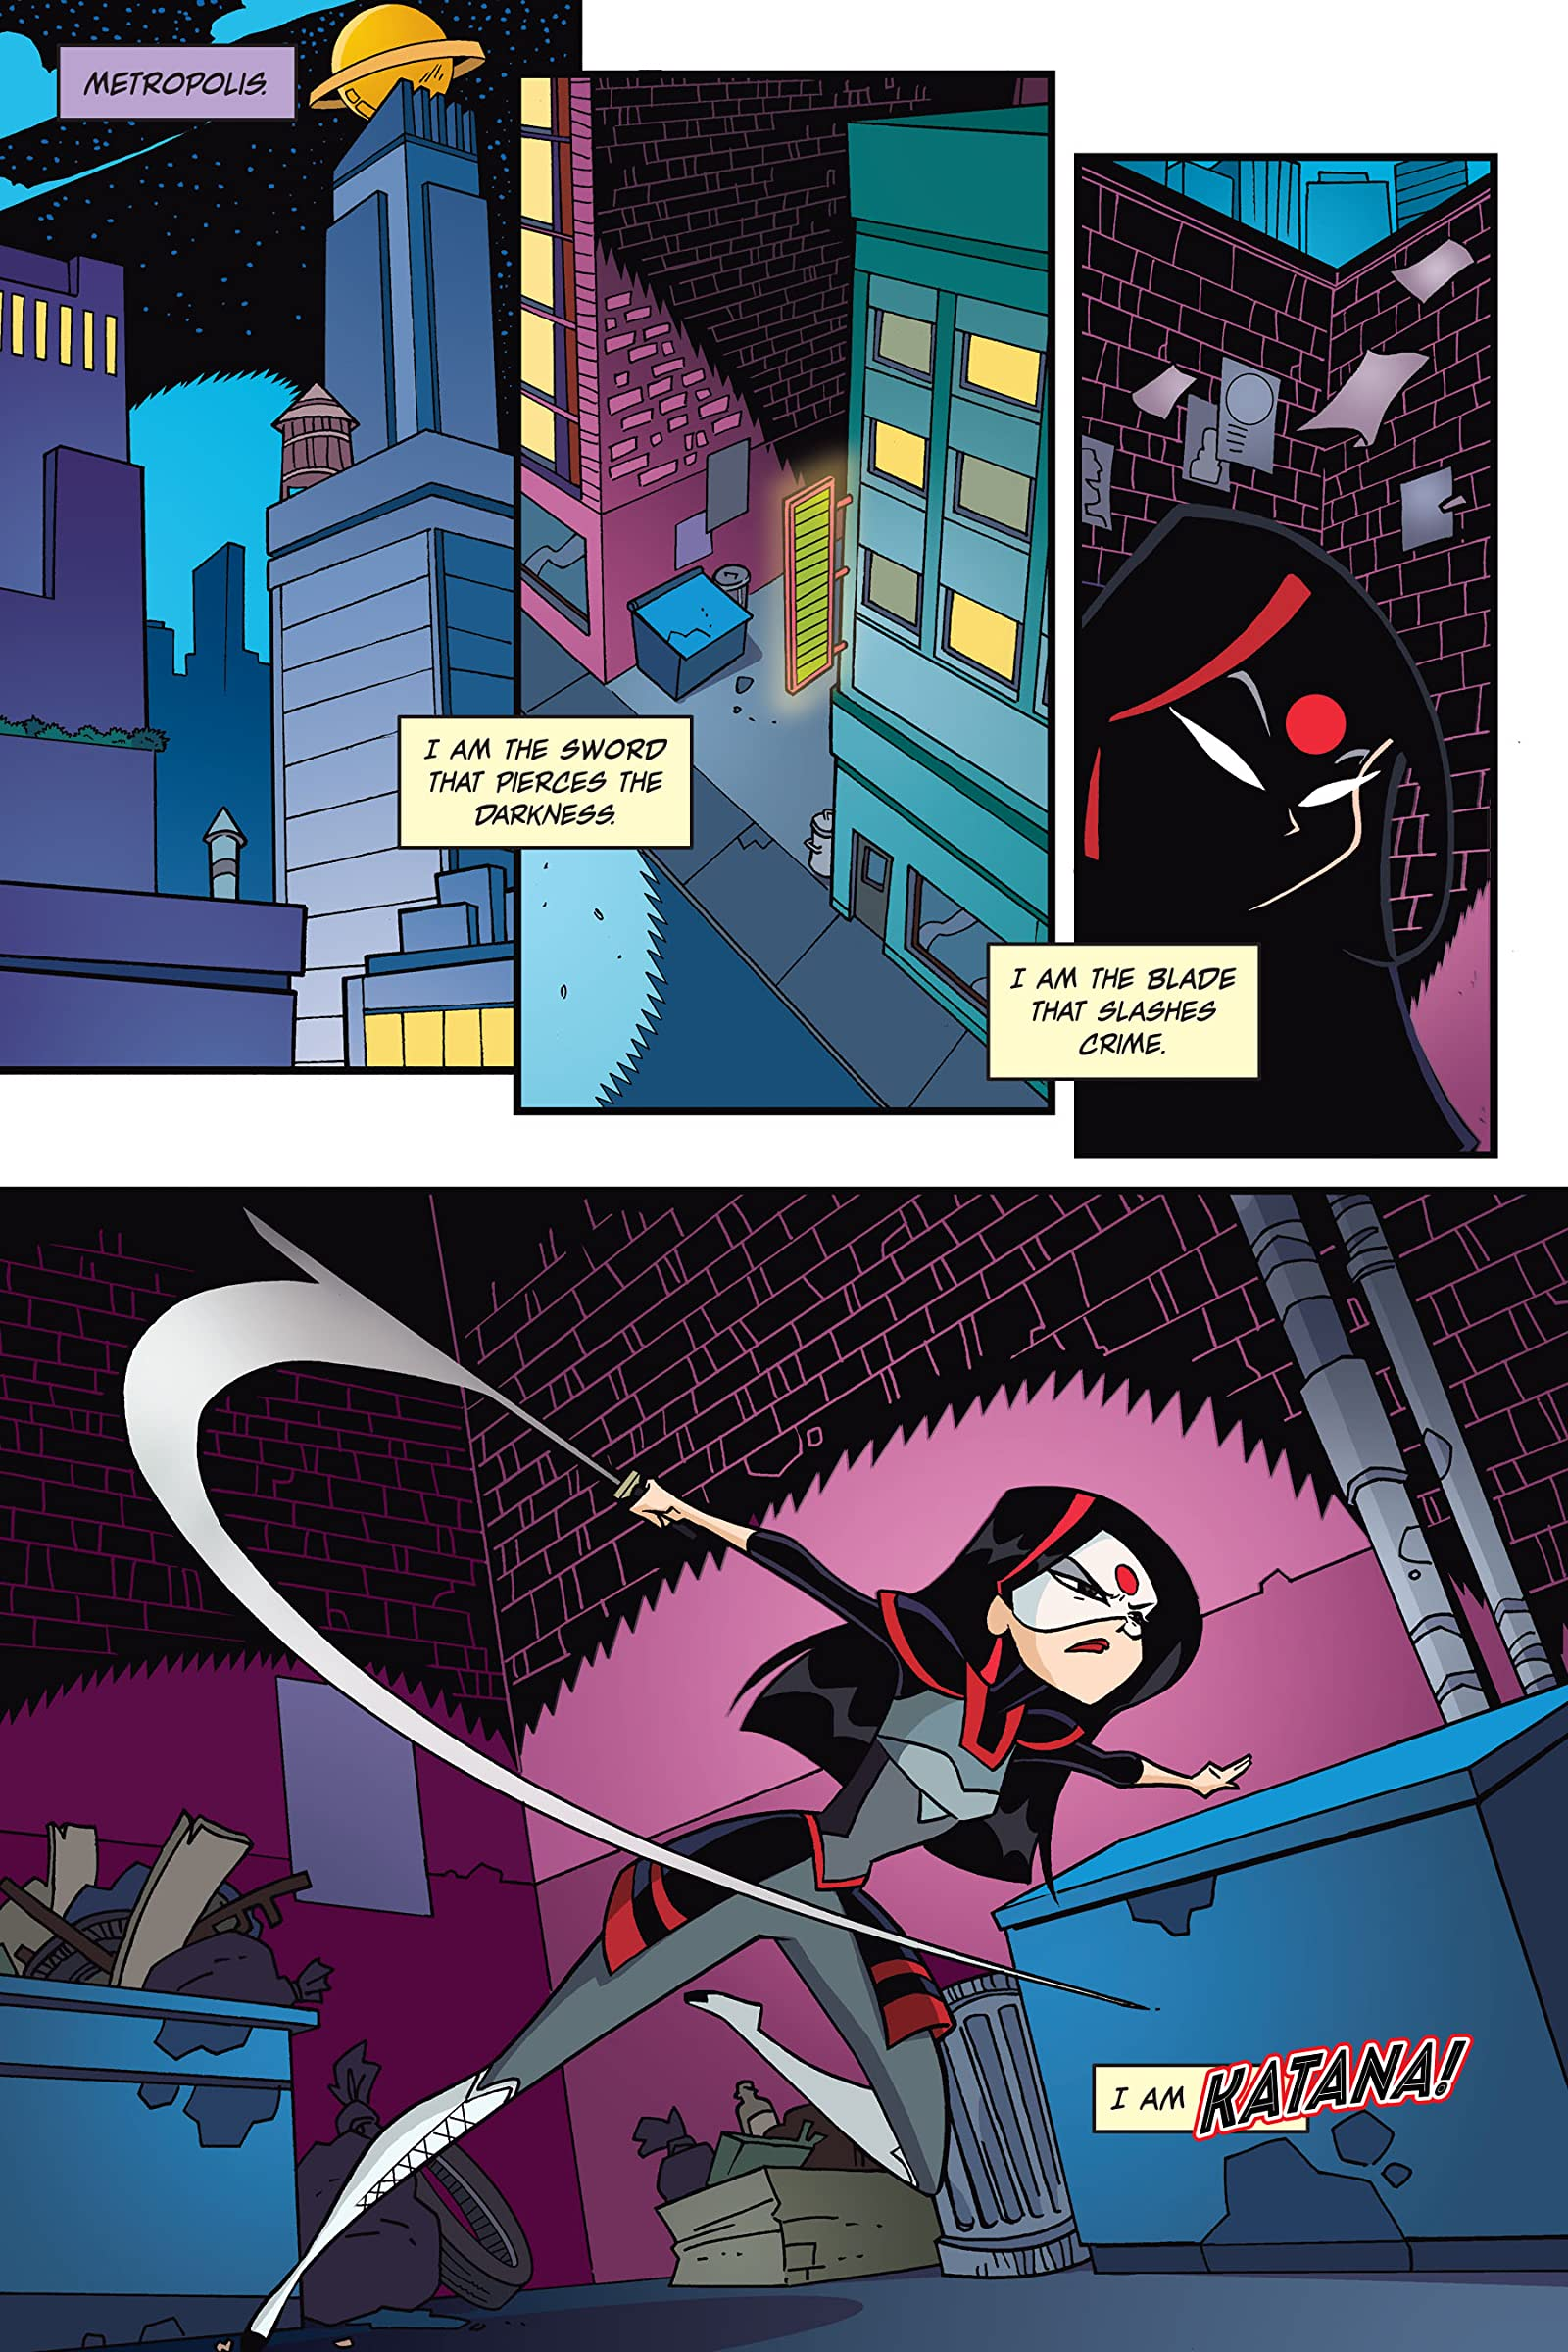 DC Super Hero Girls: Out of the Bottle (2017) - Comics by comiXology